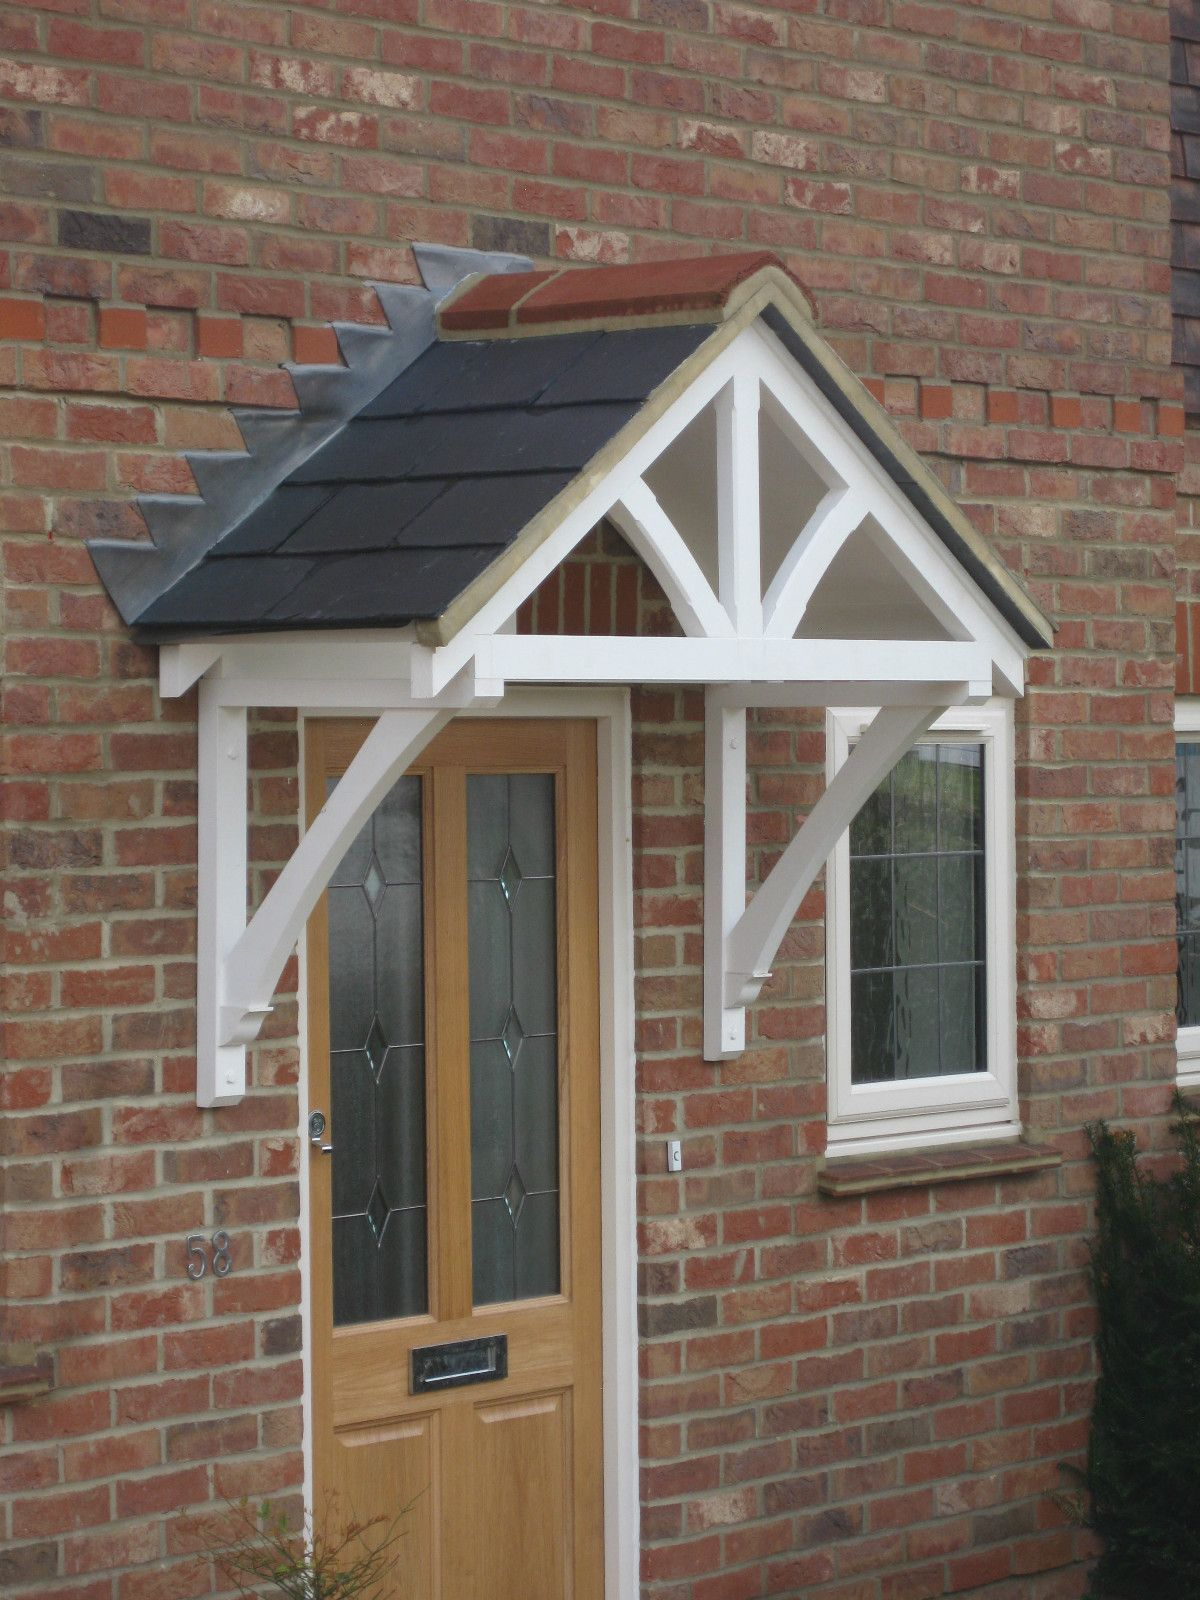 Timber Door Canopy For Front Or Back Period Entrance Porch Kits Fdl140 60 Uk Picclick